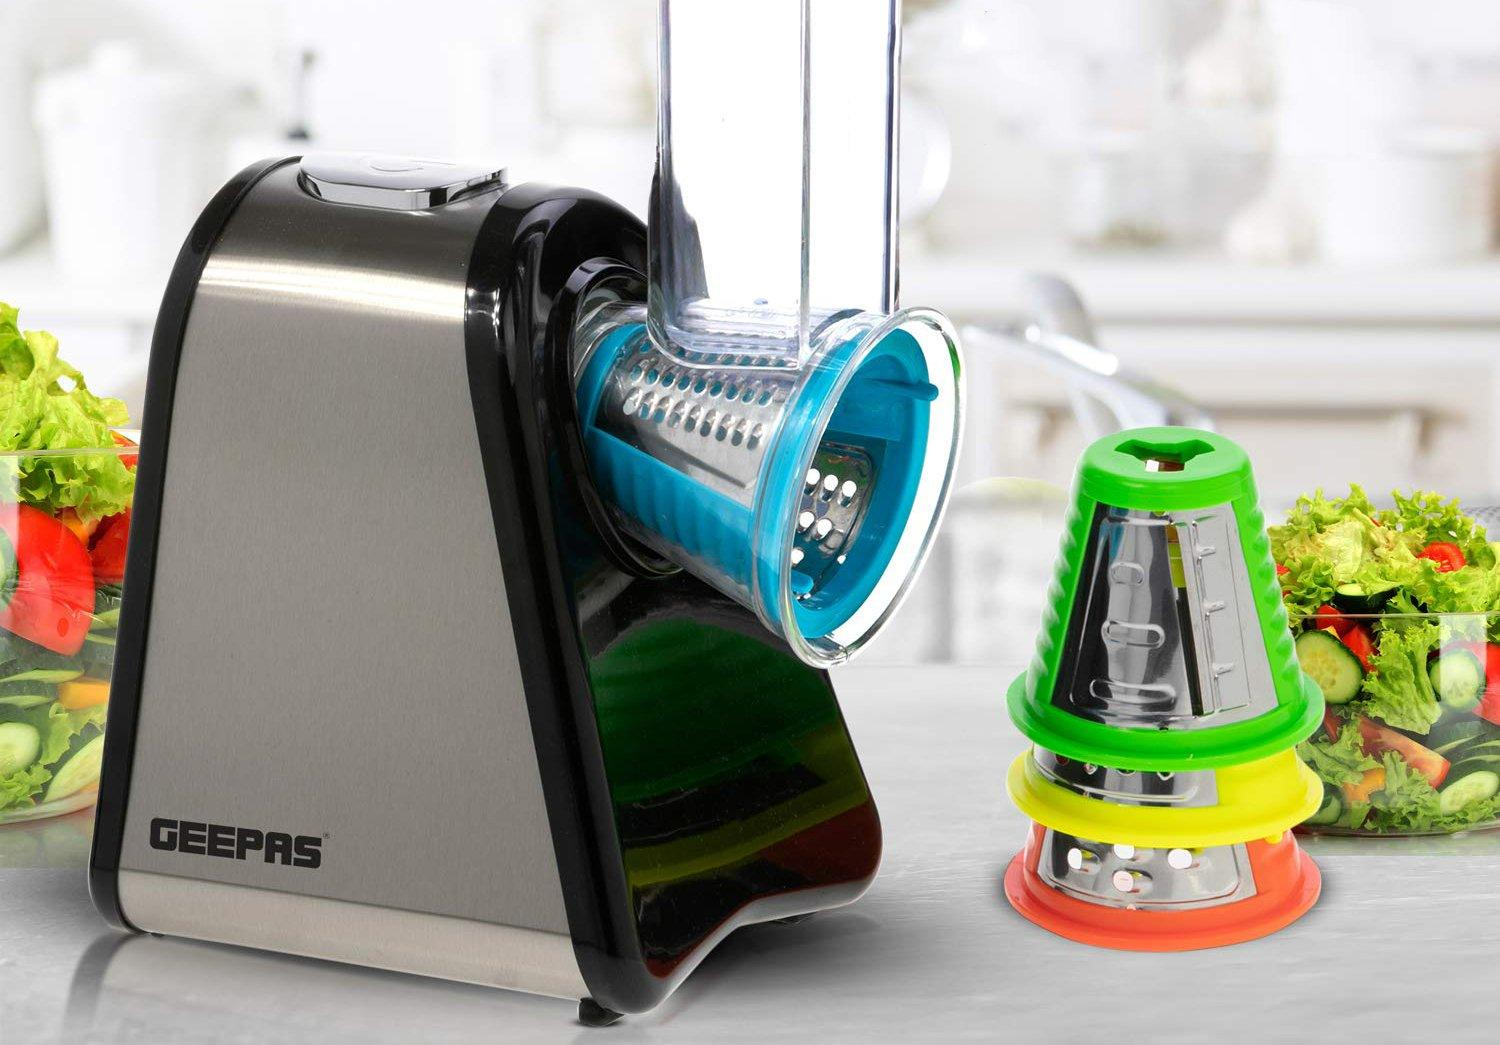 The Best Vegetable Spiralizer for Salads: The Geepas Formula